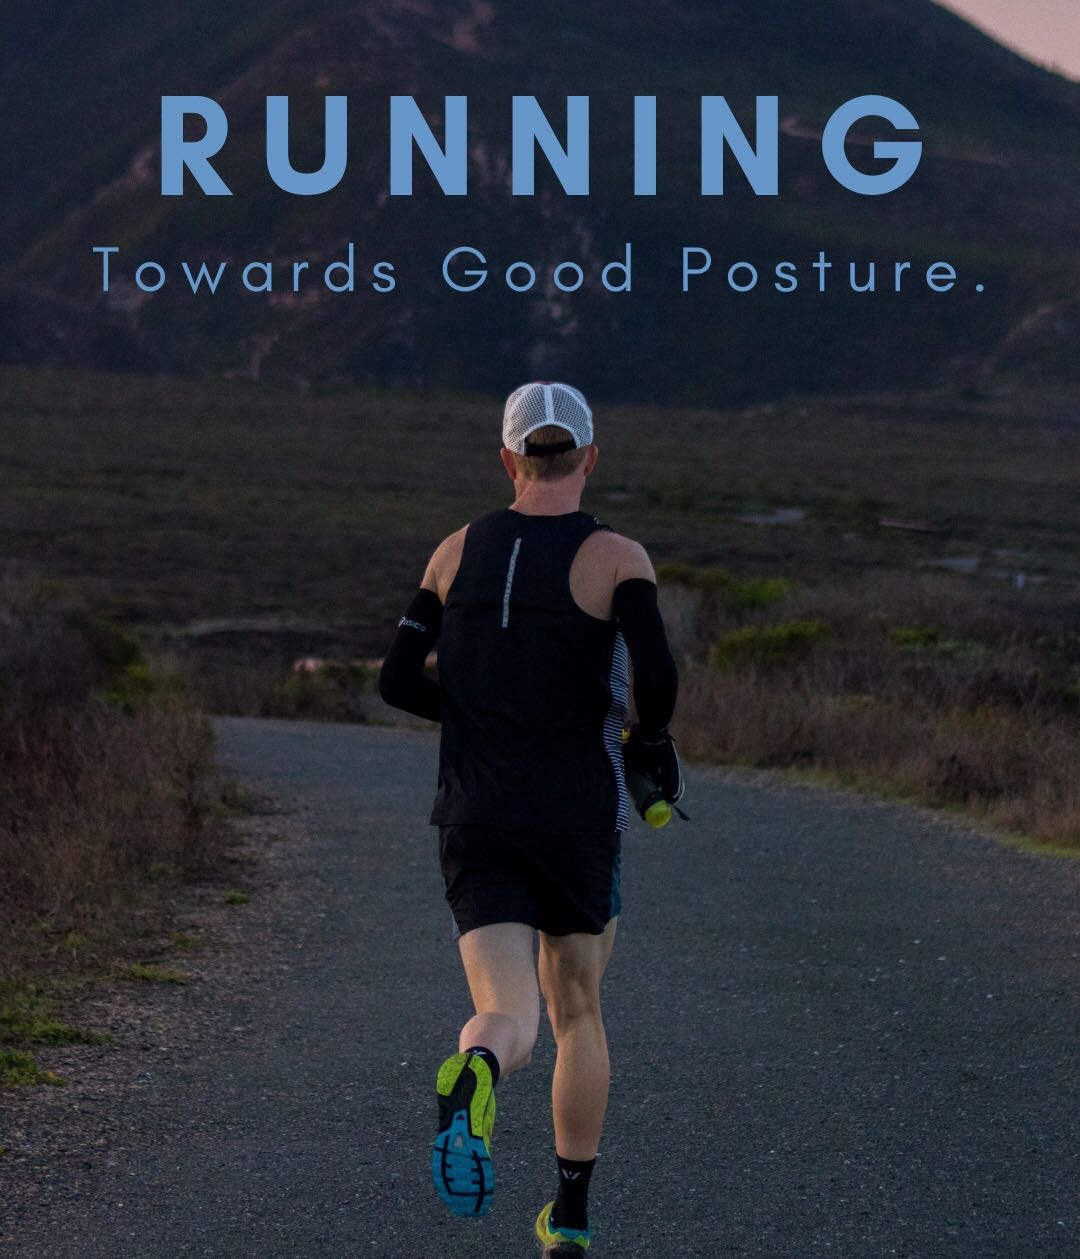 Running Towards Good Posture.